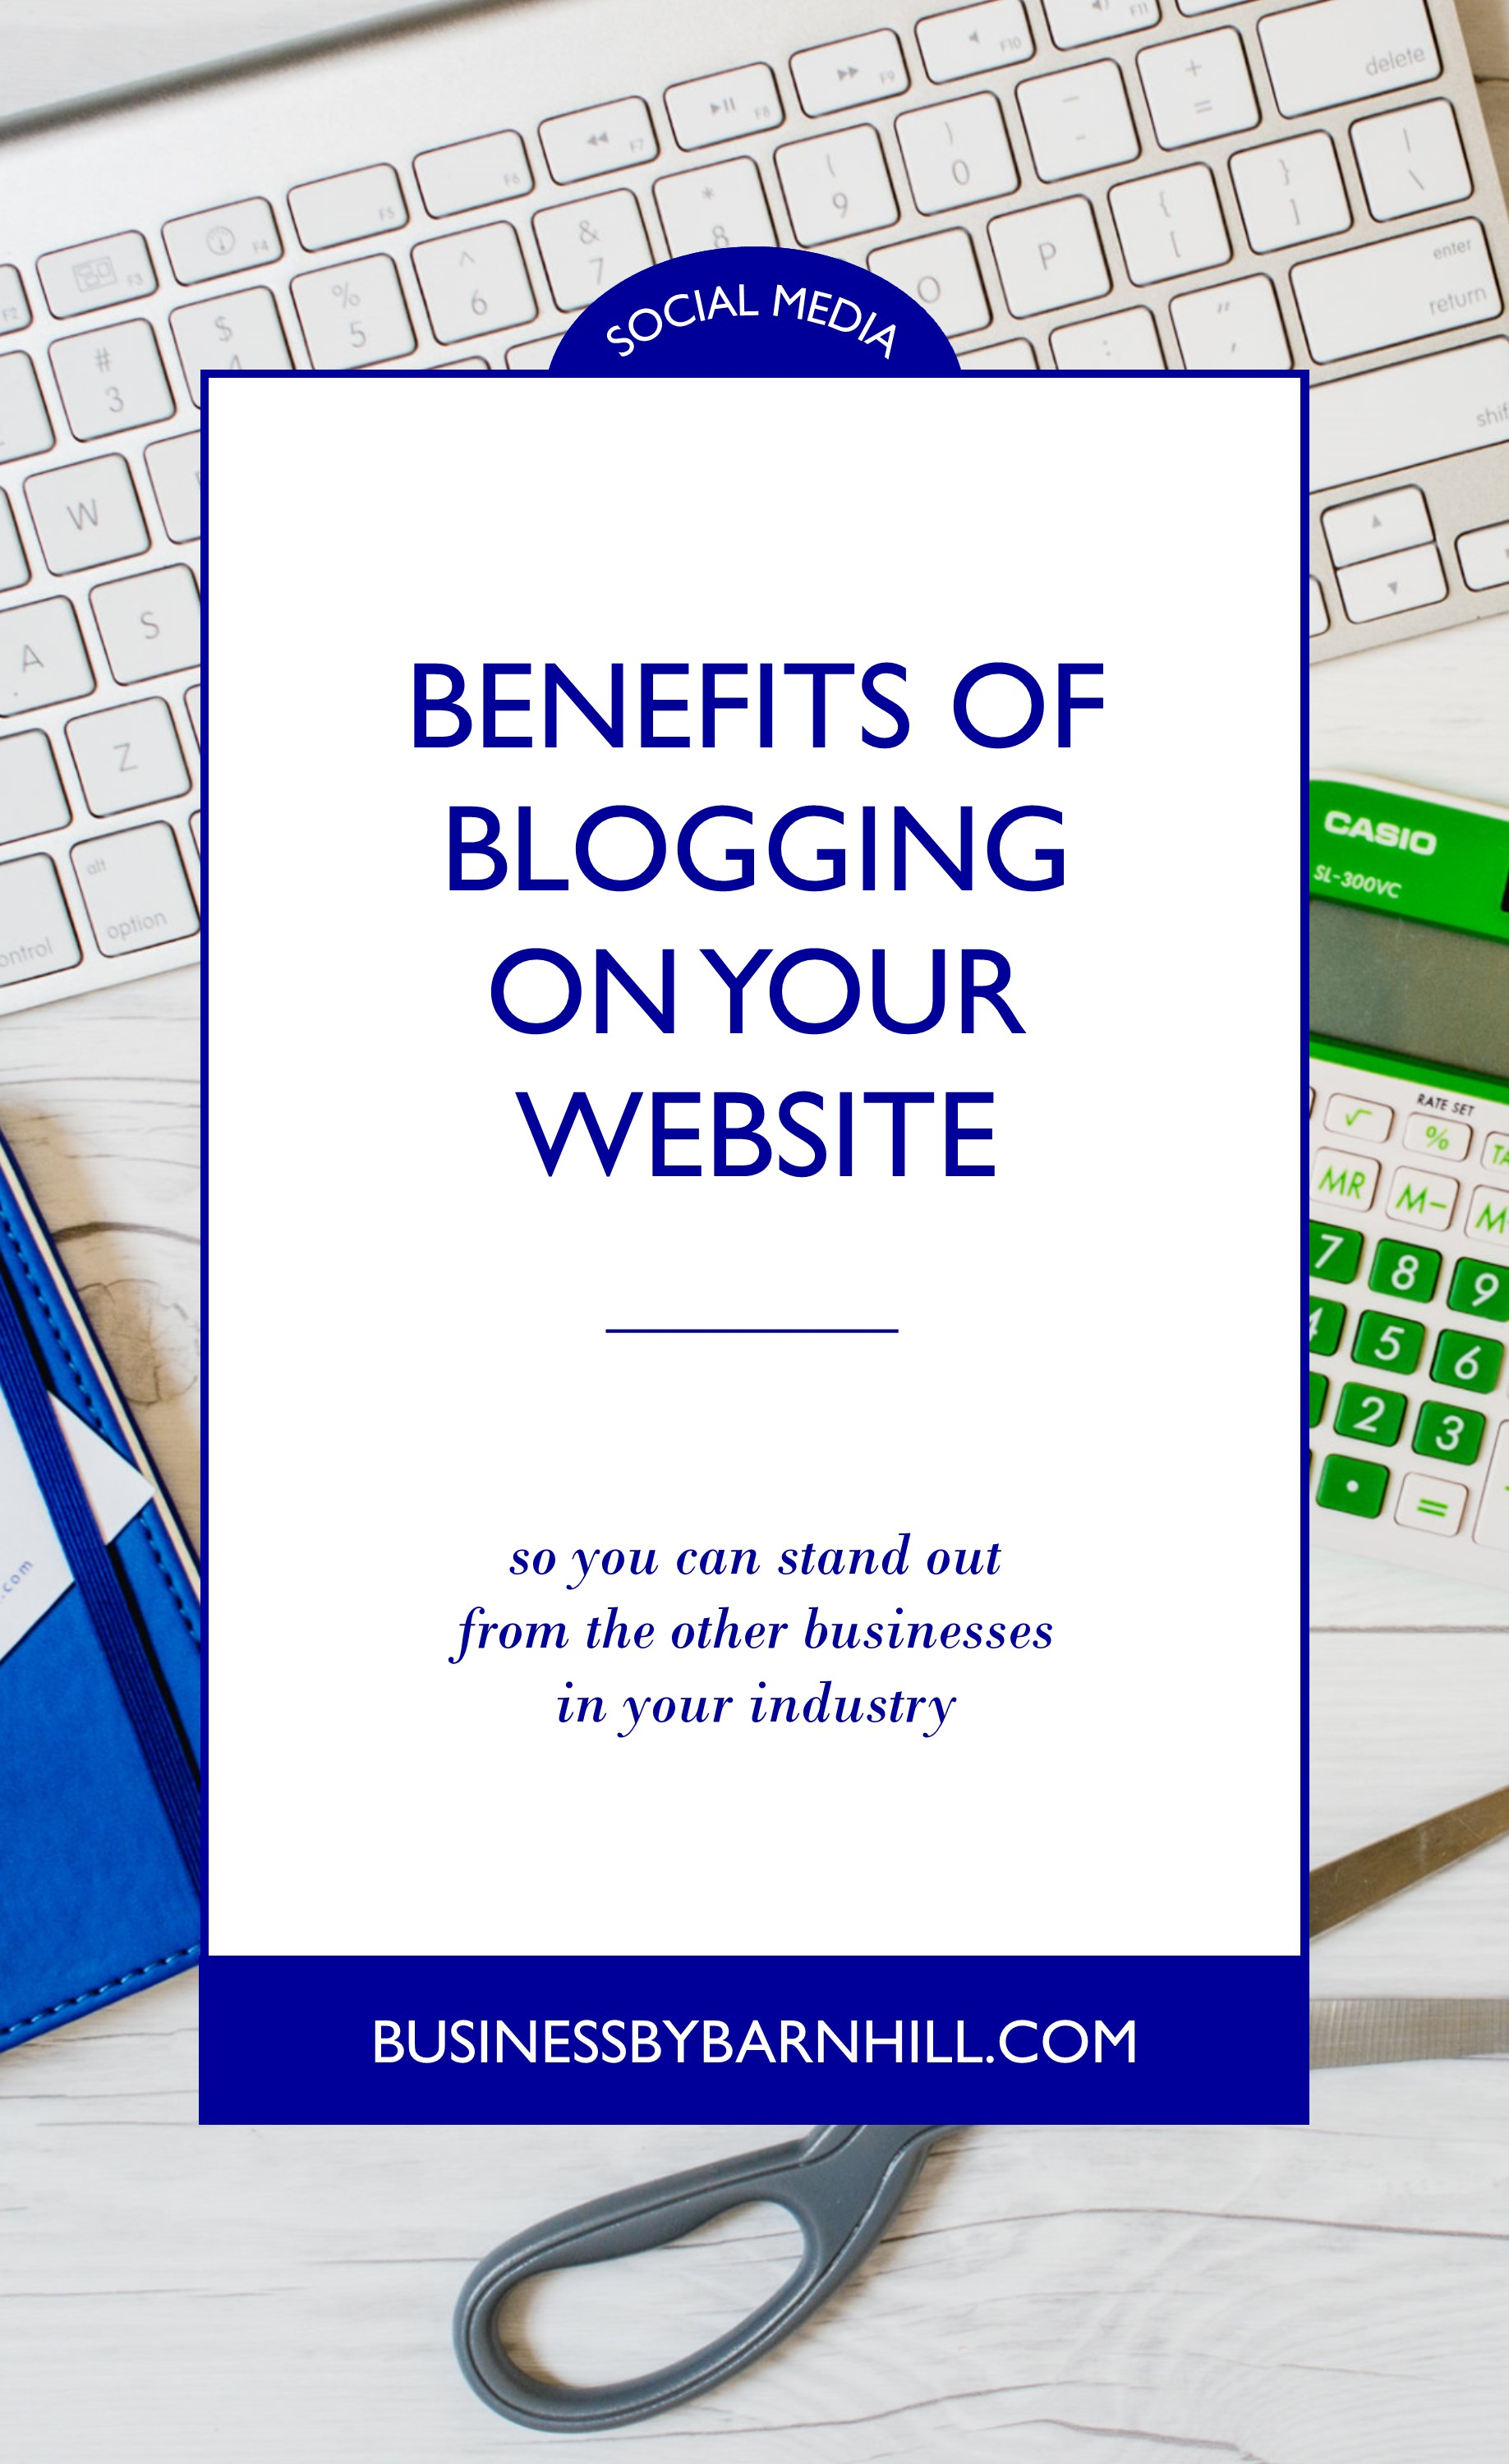 business by barnhill pinterest benefits of blogging on your website.jpg